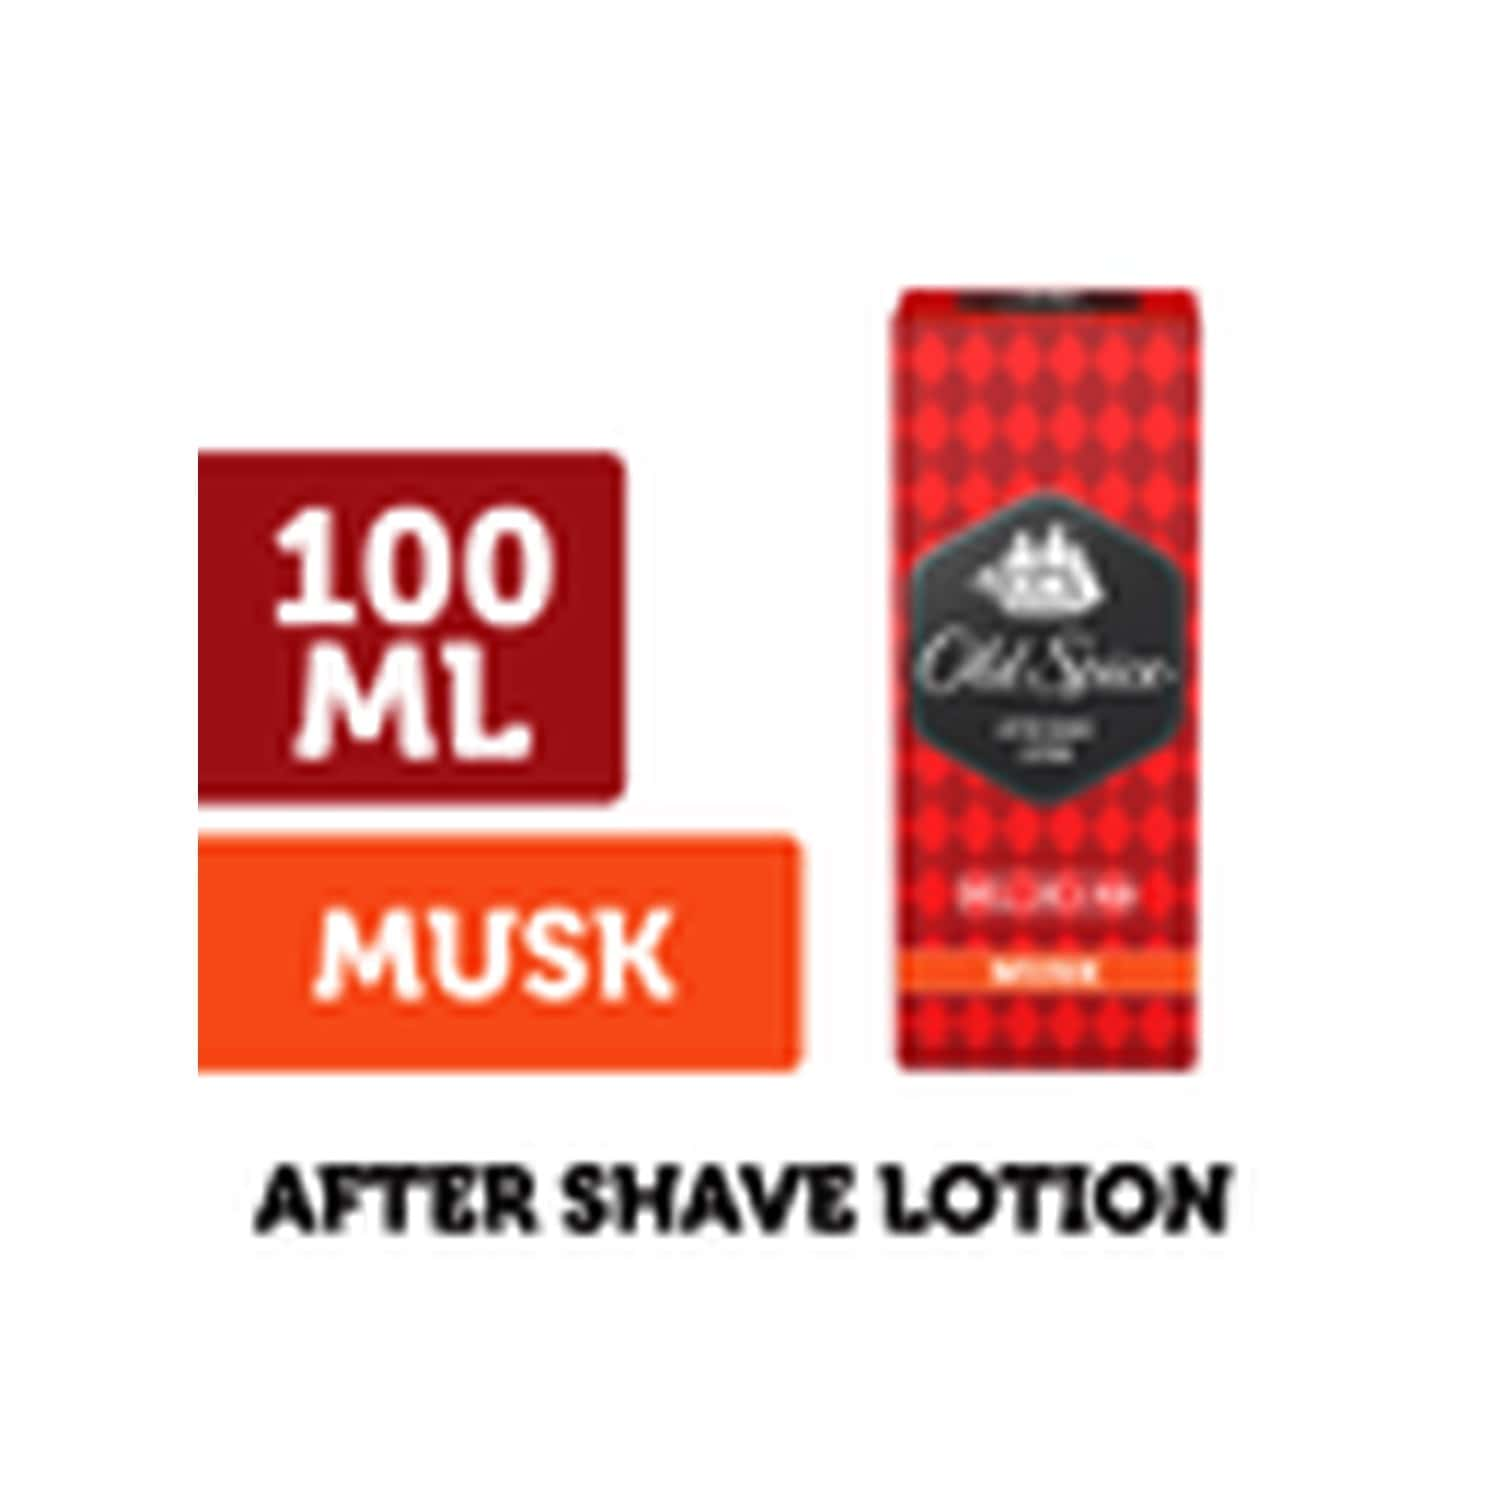 Old Spice After Shave Lotion (musk) - 100ml